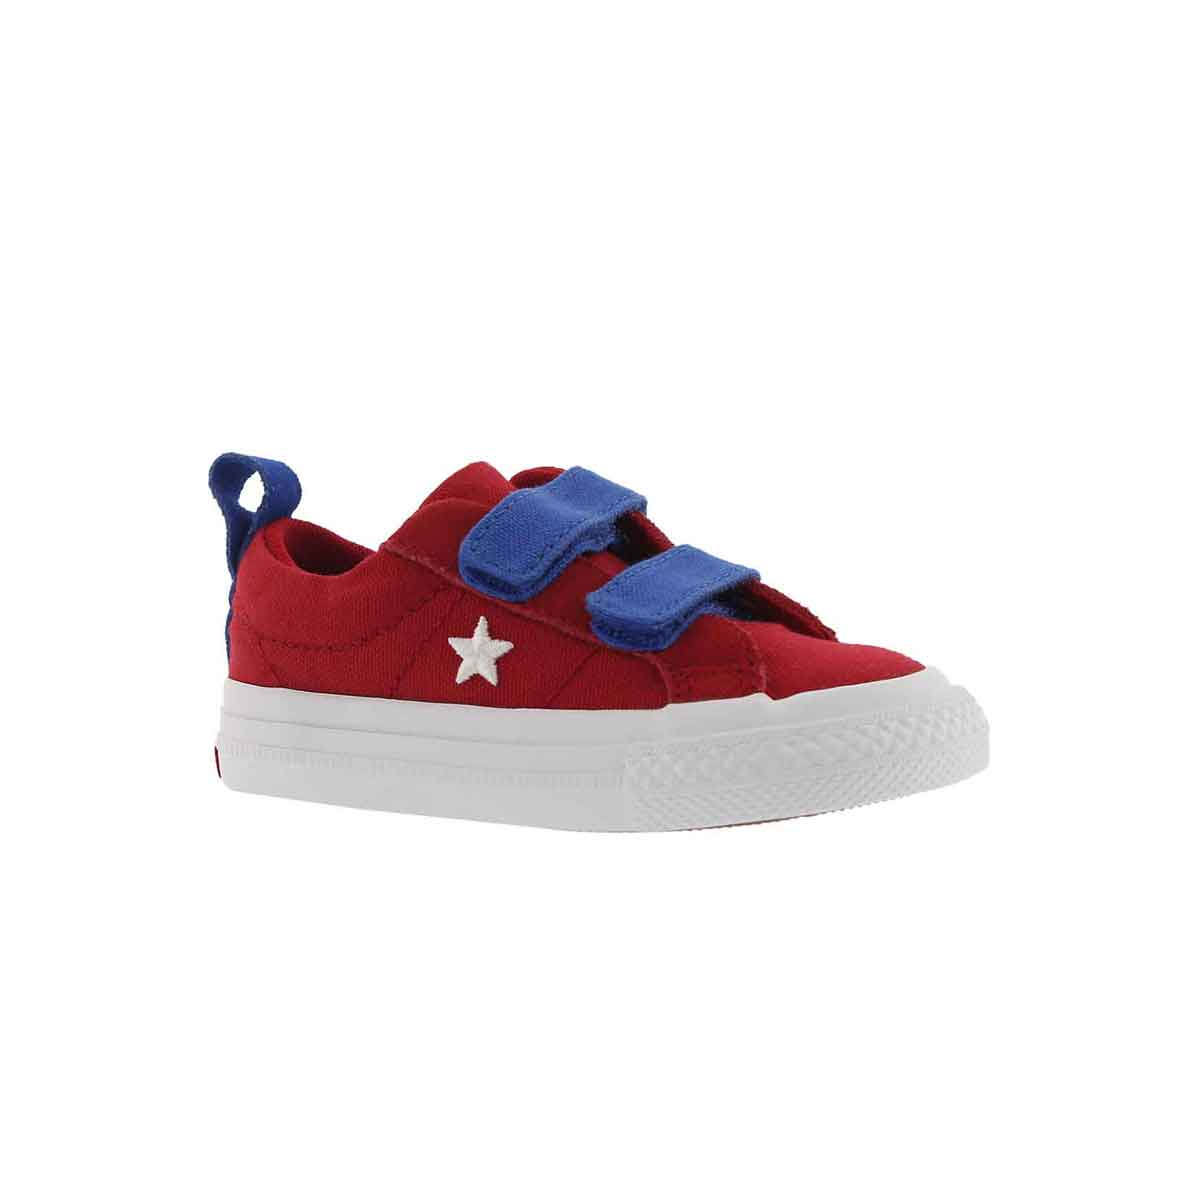 Infs-g One Star 2V gym red/wht  sneaker